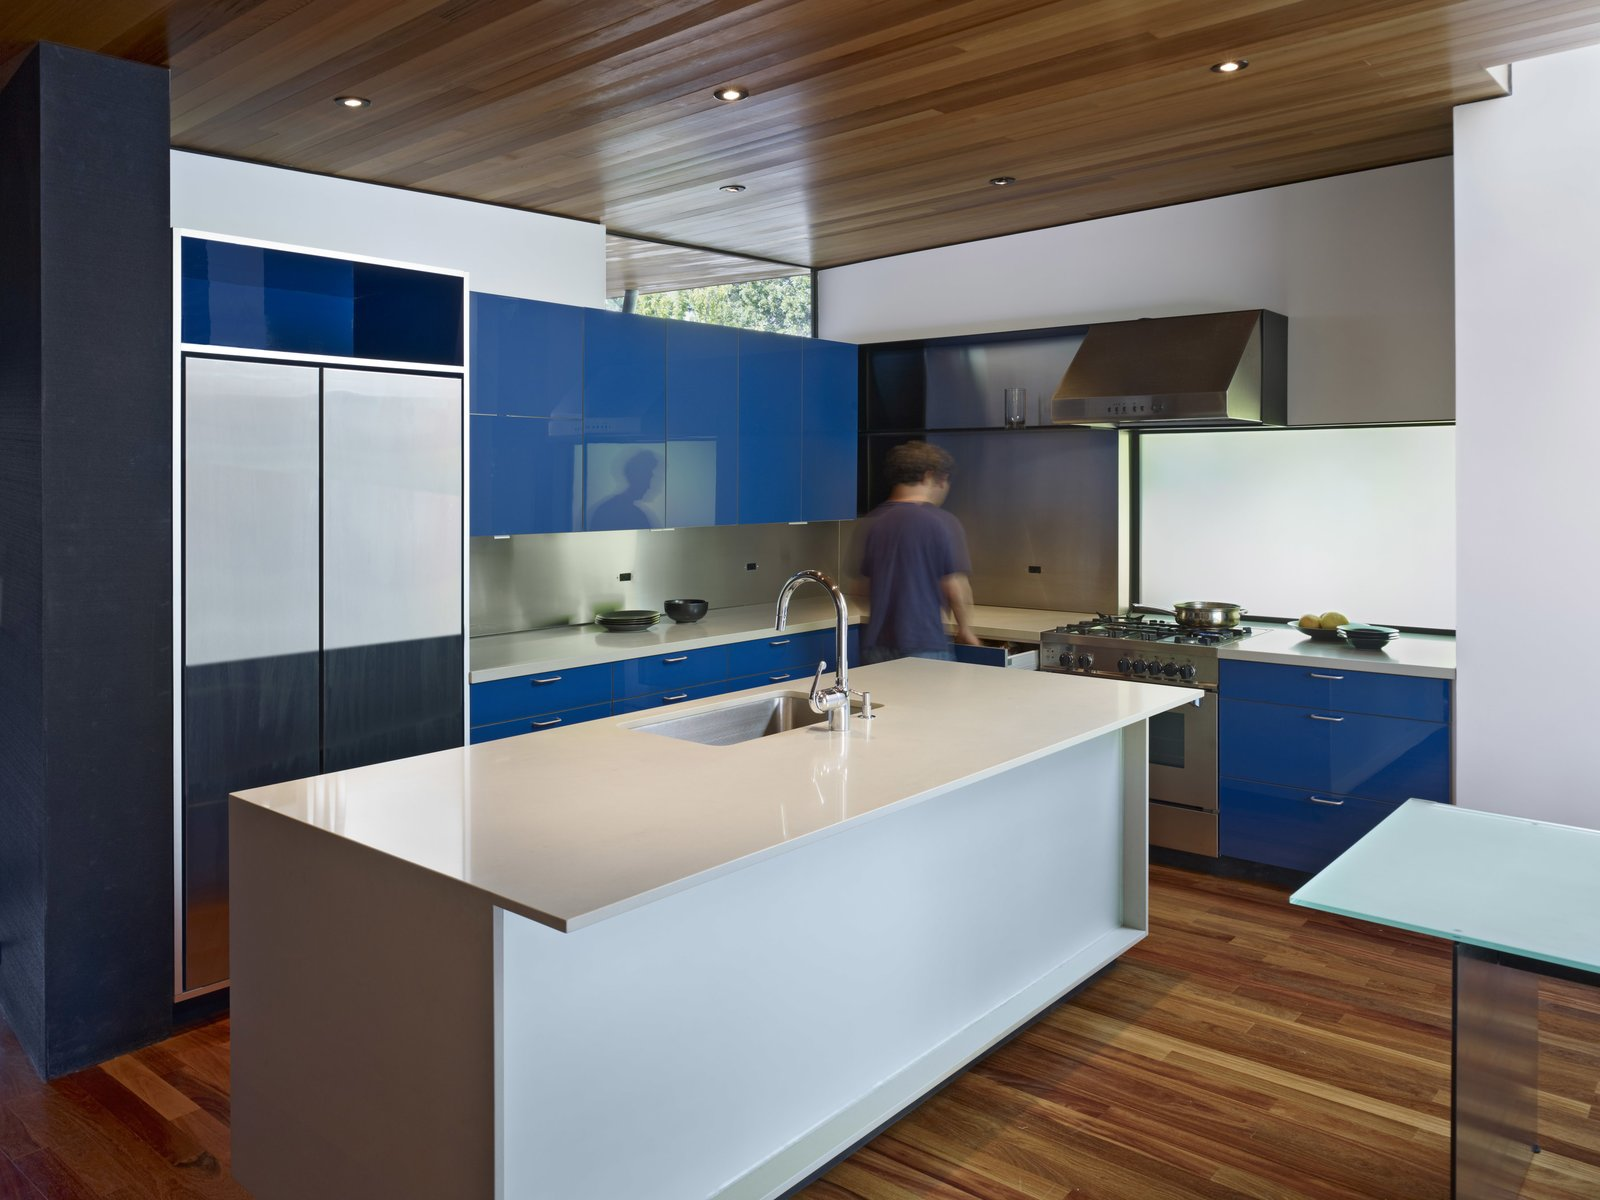 Kitchen, Colorful, Medium Hardwood, Metal, Engineered Quartz, Ceiling, Range, Refrigerator, and Undermount Accenting the warm wood tones, pops of cobalt blue are found throughout the home, including in the kitchen. The space, which anchors the new living wing, features custom lacquer finish cabinets, Caesarstone counters, a Bertazzoni range, a Miele dishwasher, a Kohler sink, and a custom stainless steel backsplash.  Kitchen Metal Engineered Quartz Photos from 1950s Ranch